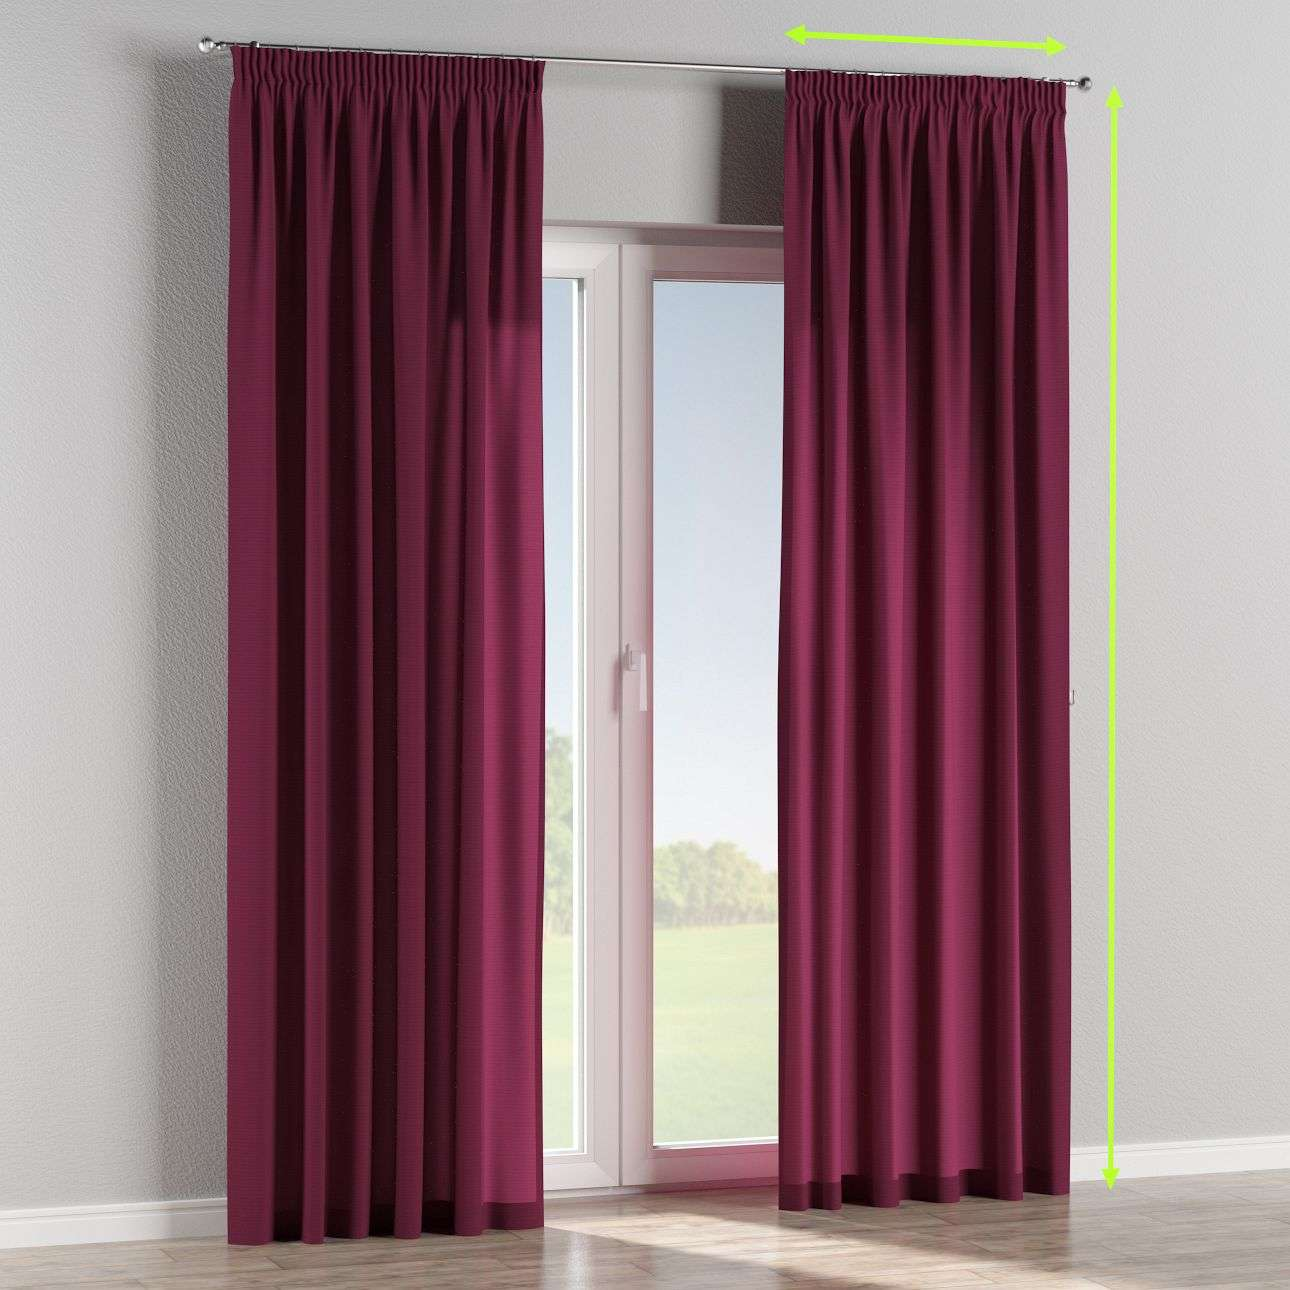 Pencil pleat curtains in collection Jupiter, fabric: 127-20